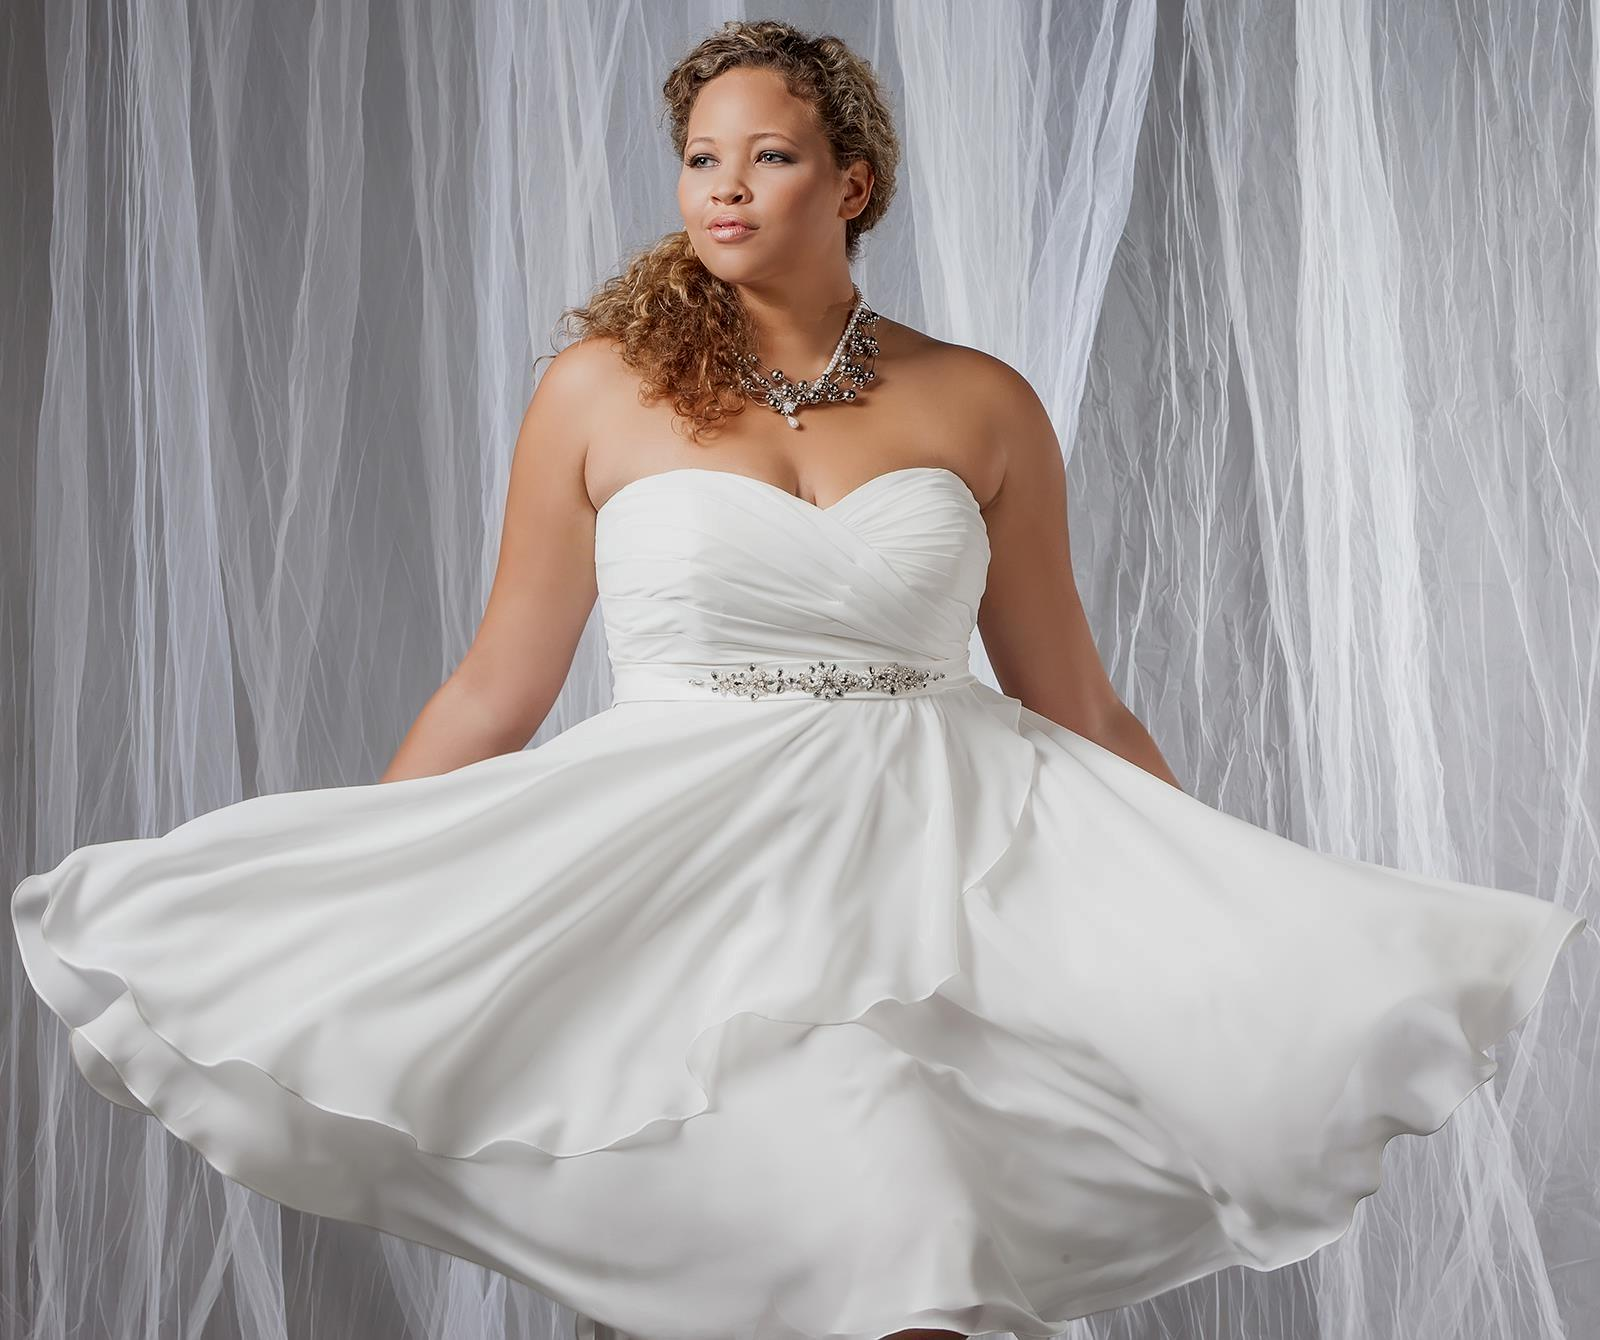 Affordable wedding dresses for plus size women 2018 plus for Wedding dress plus size